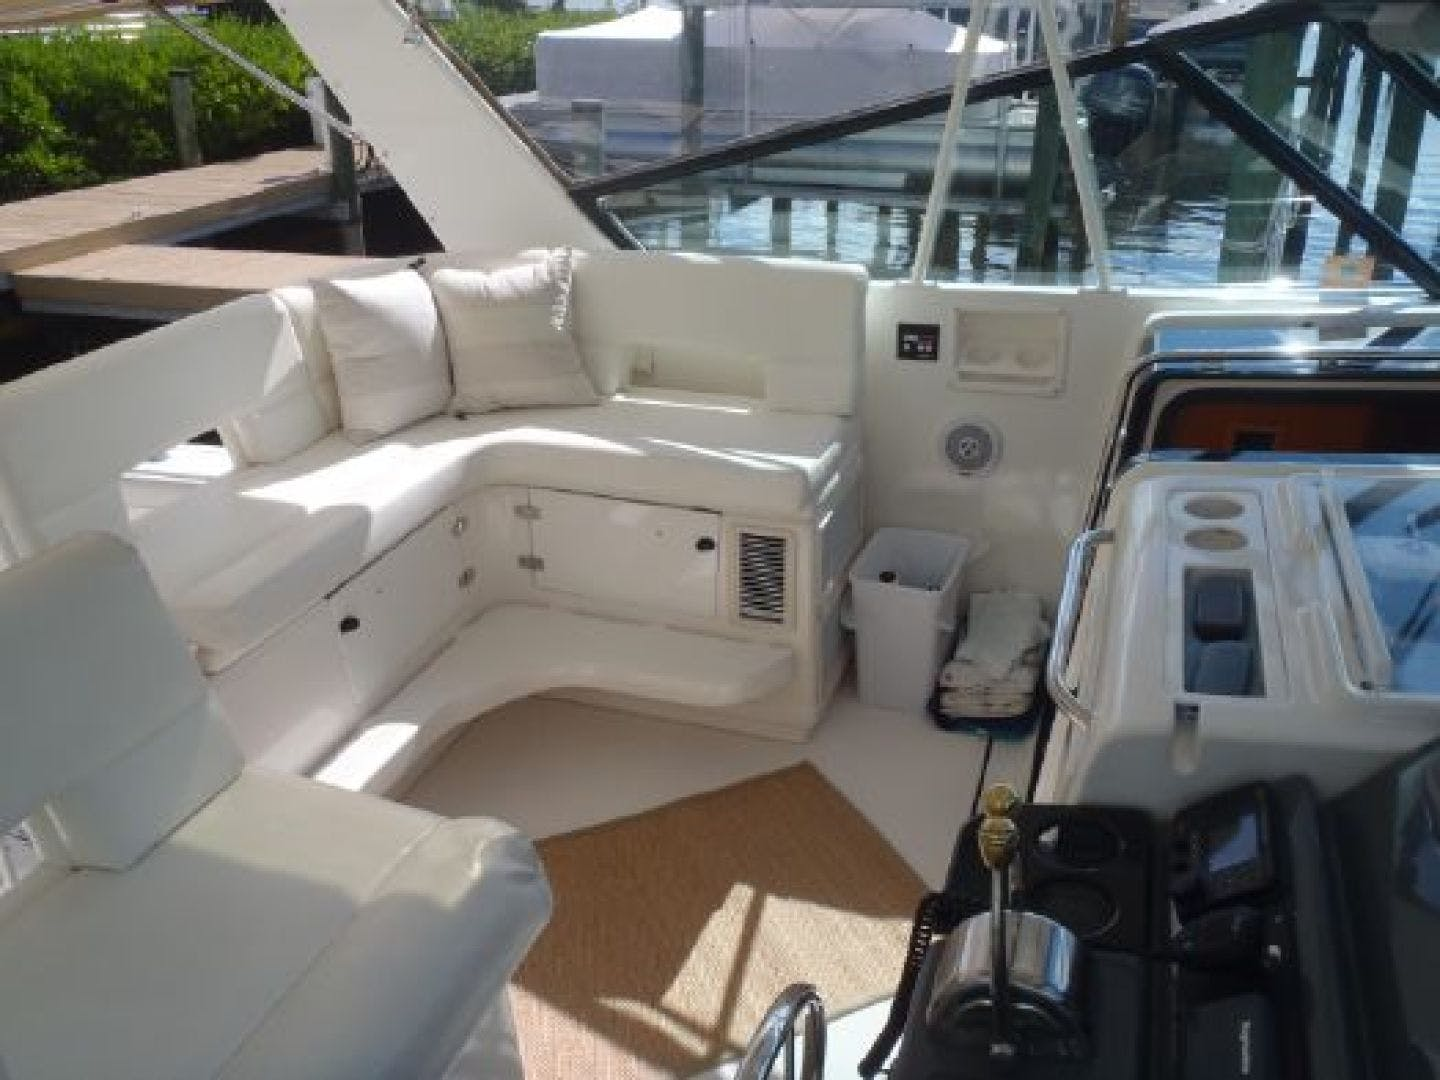 2002 Tiara Yachts 41' 41 Open Island Trader | Picture 1 of 41